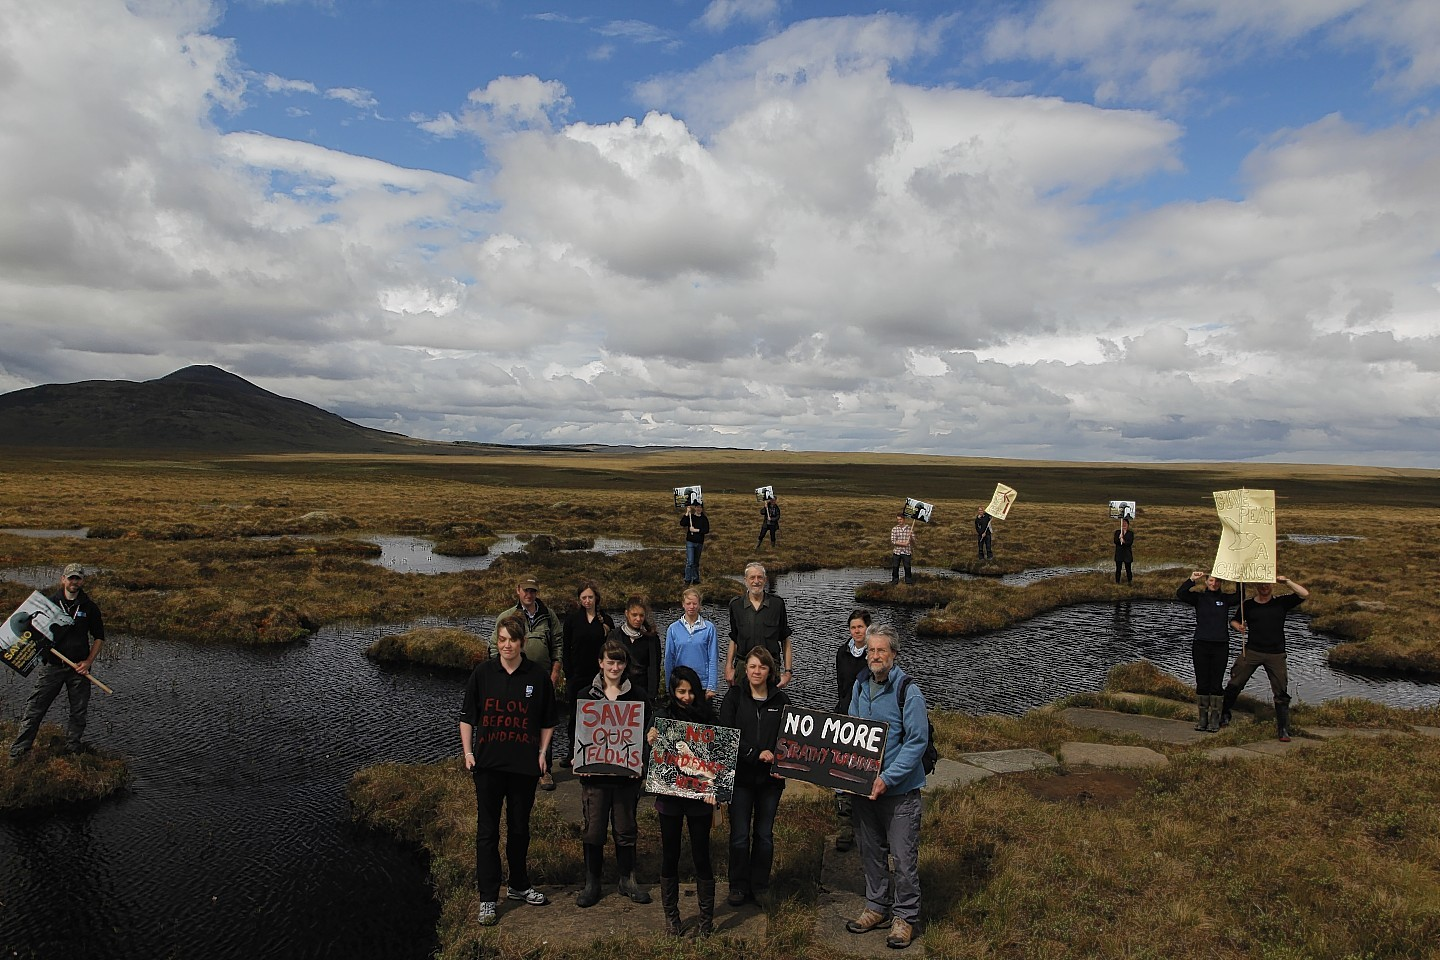 RSPB campaigners at Strathy South